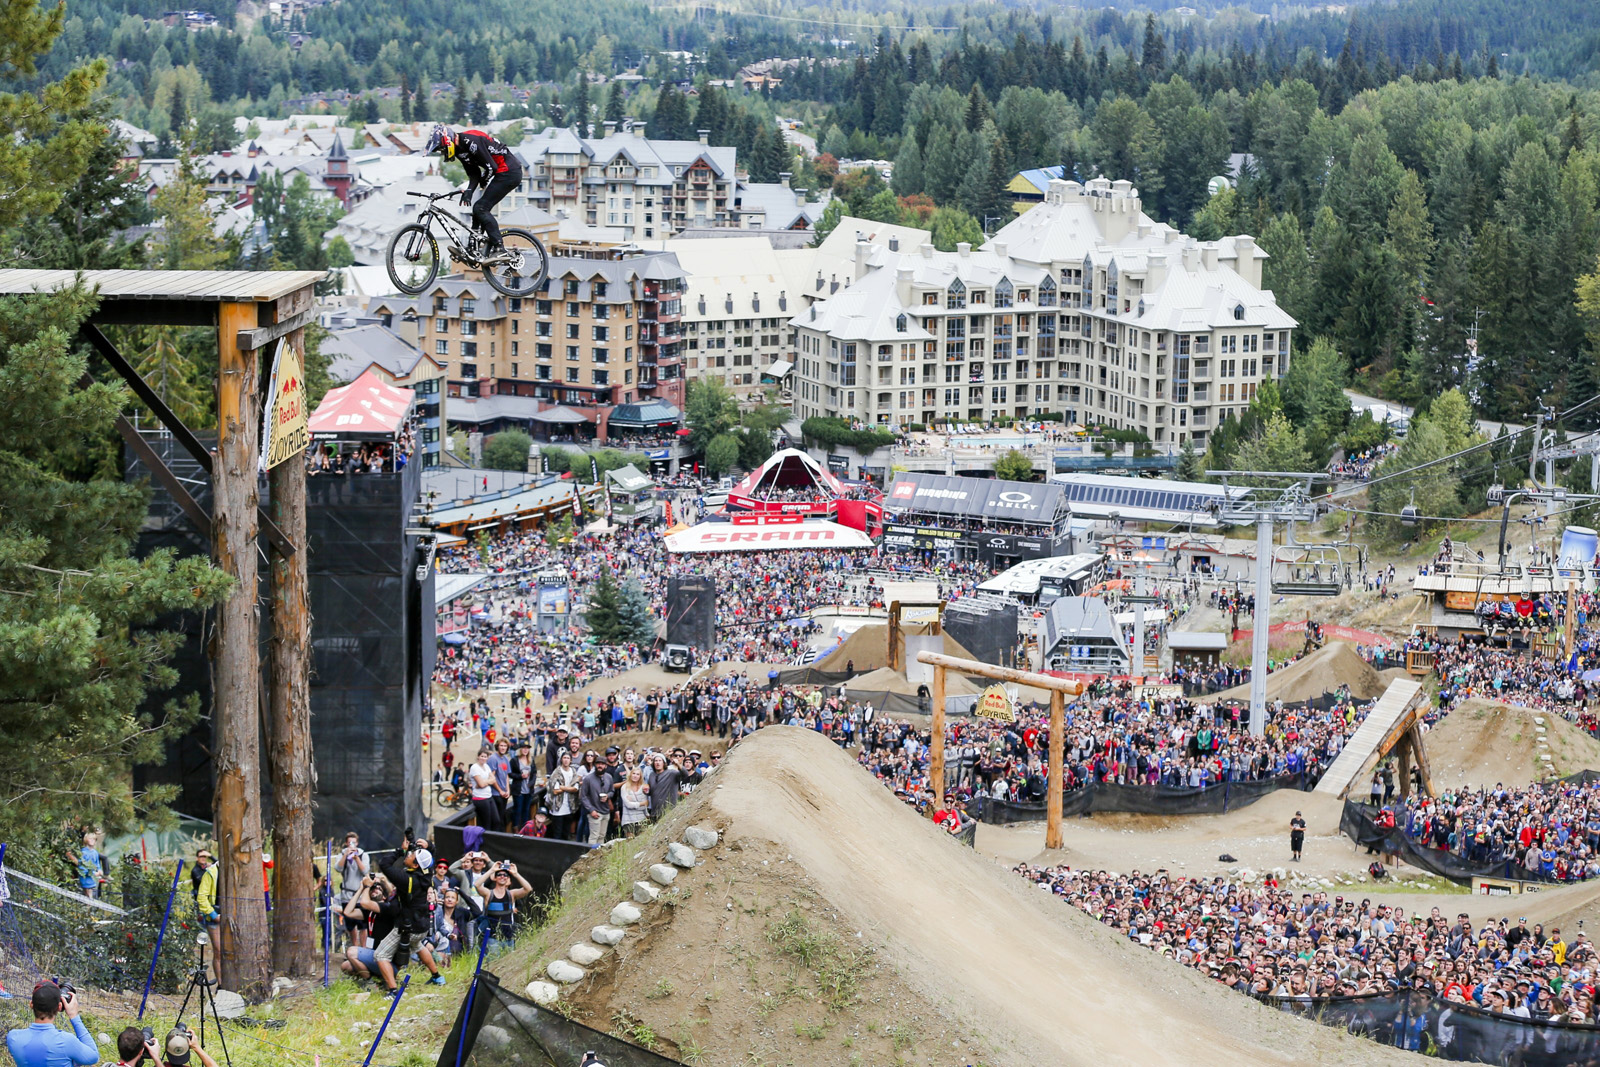 Brandon Semenuk performs an opposite truckdriver at the Red Bull Joyride in Whistler, Canada on August 16th, 2015 // Jussi Grznar / Red Bull Content Pool // P-20150817-00006 // Usage for editorial use only // Please go to www.redbullcontentpool.com for further information. //